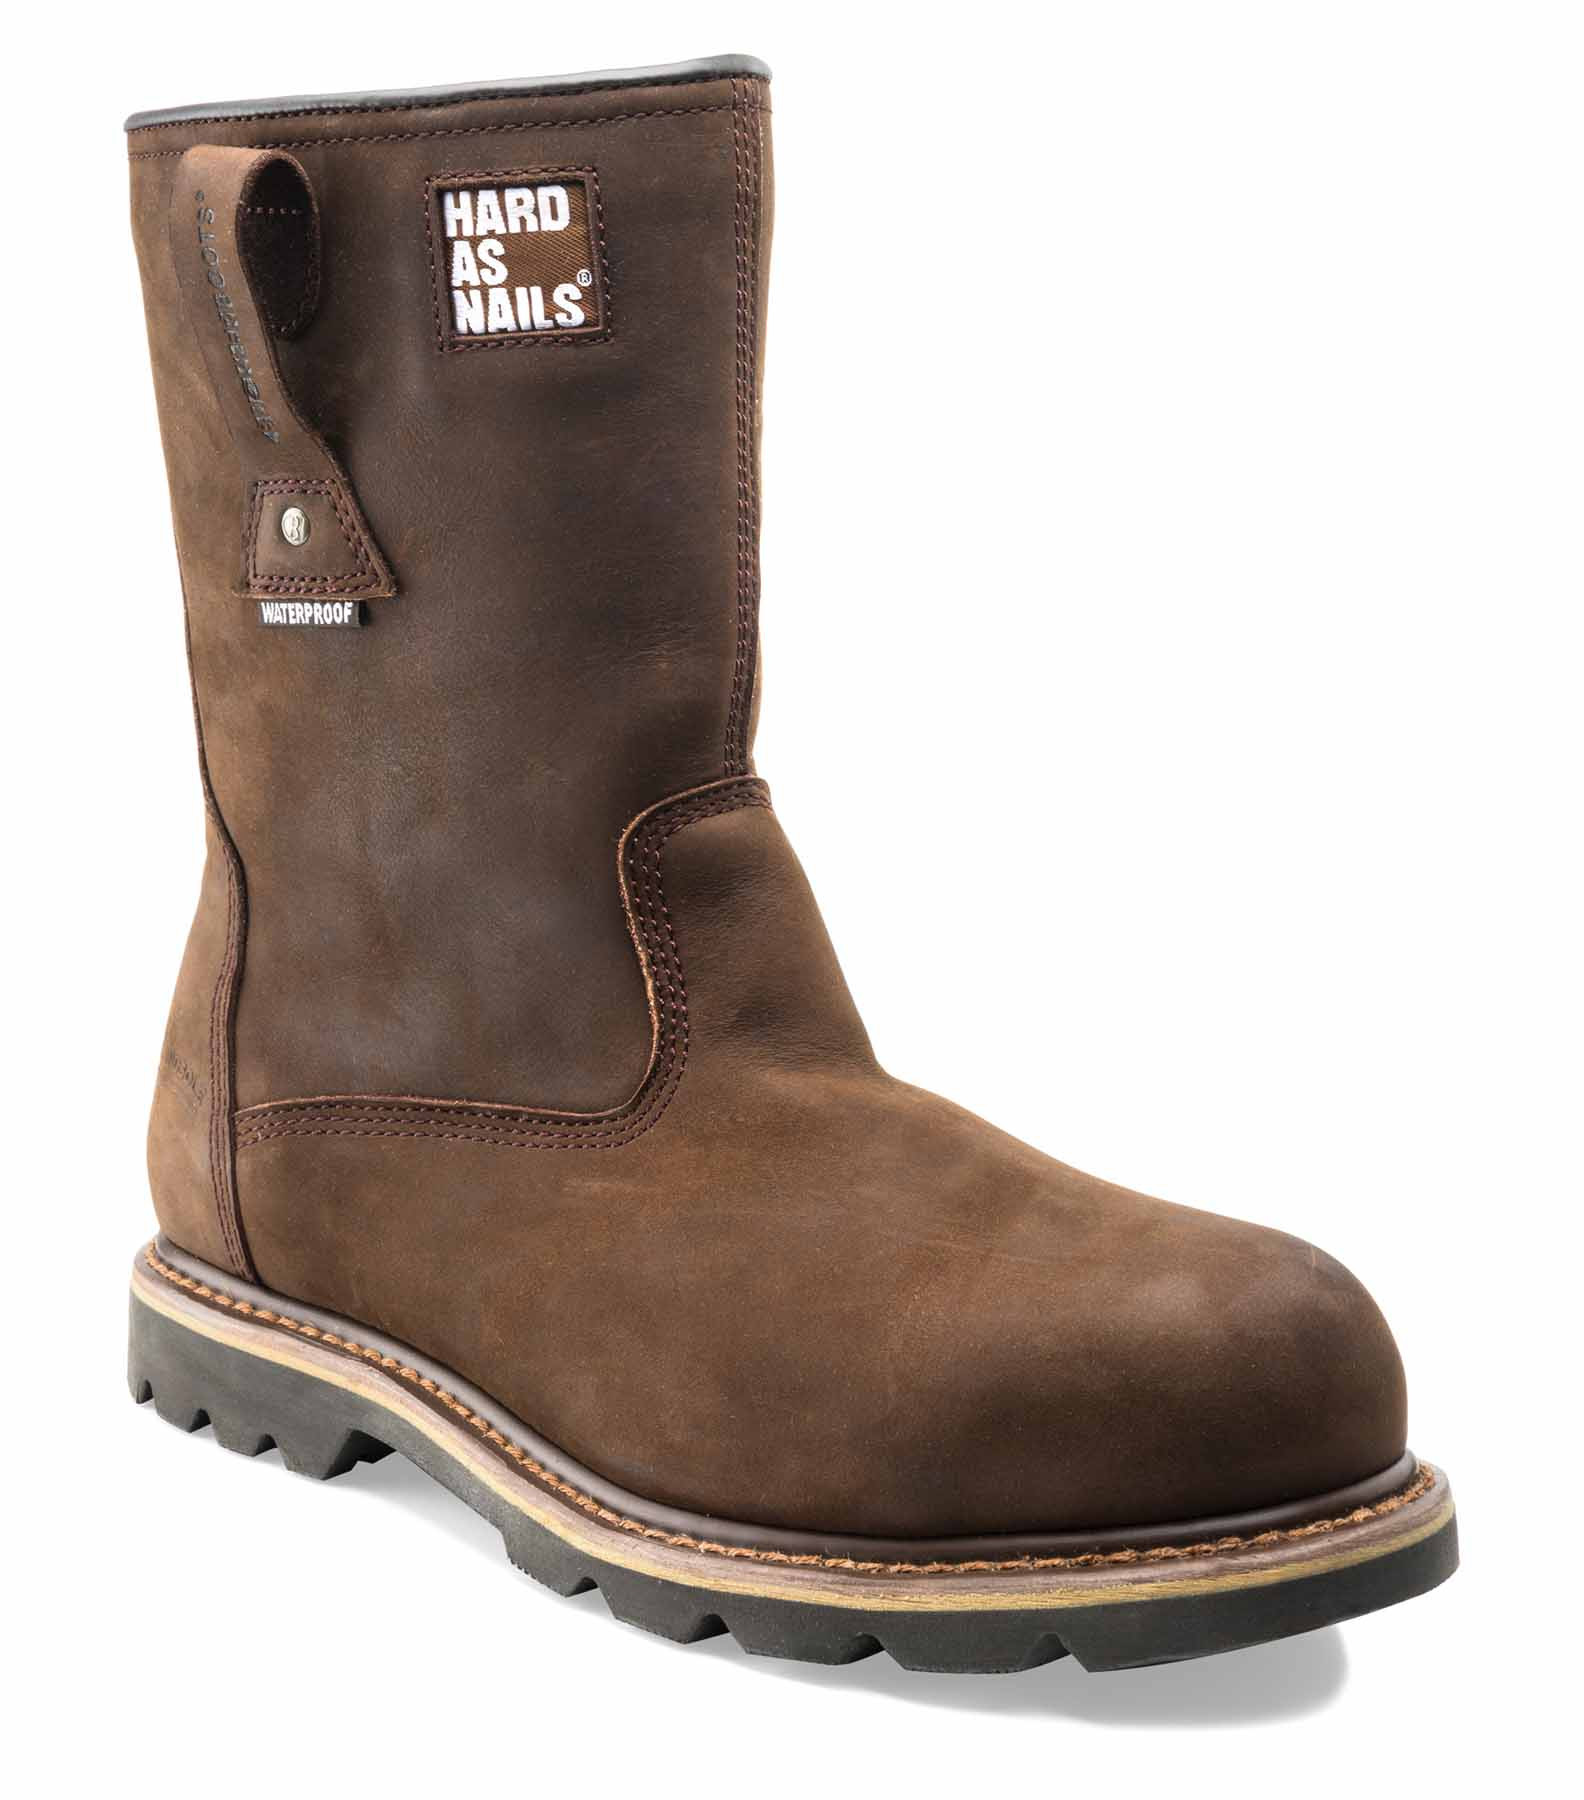 bd058dfd4f7 Safety Rigger Boot